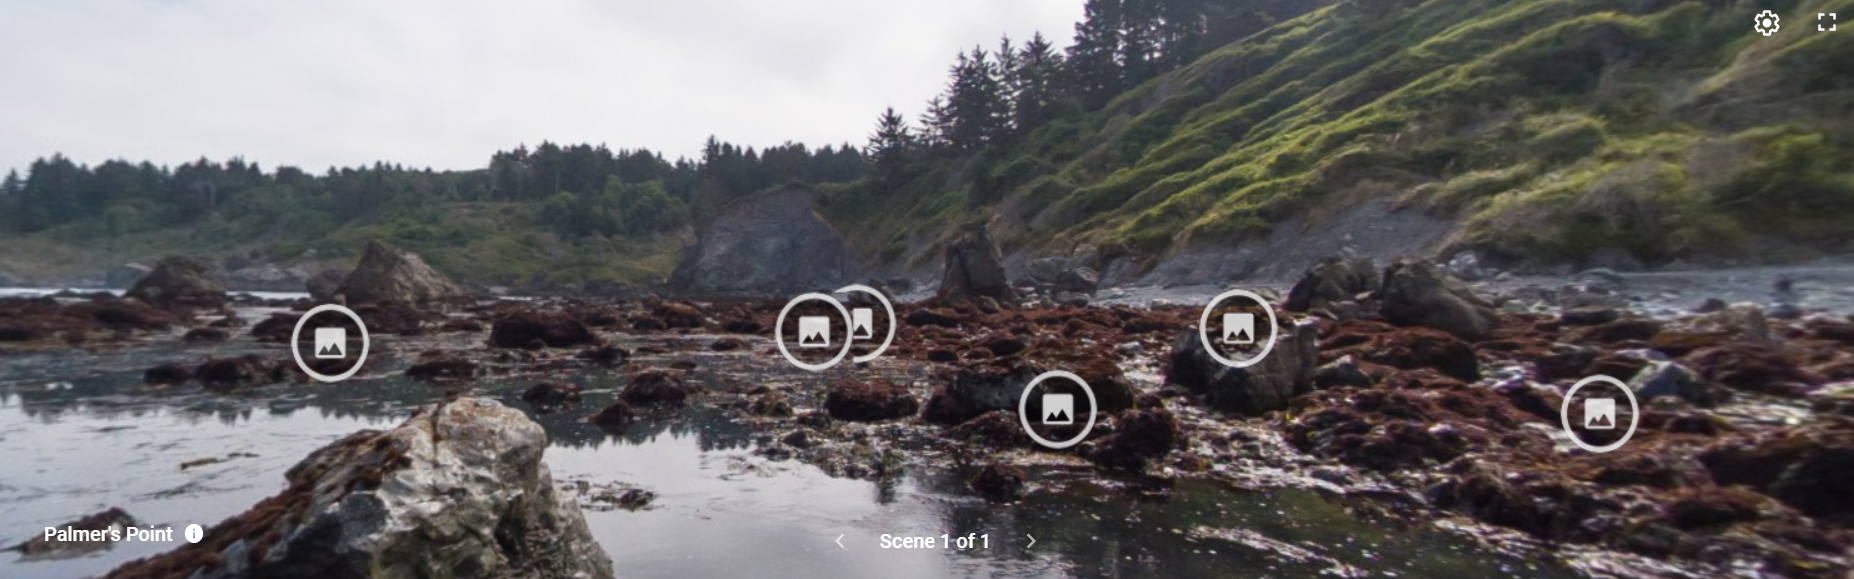 Image of Plamer's Point Virtual Tidepool